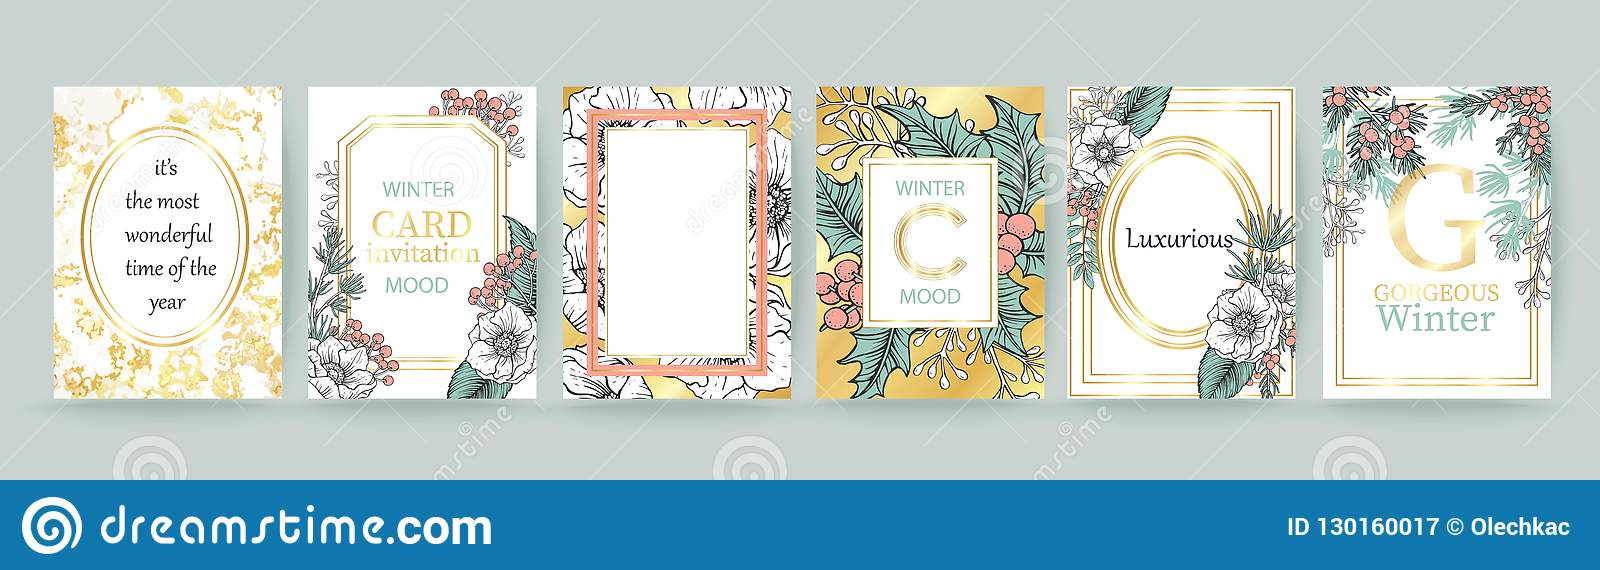 wedding pattern design floral arrangement botanical frame mirror composition place for text merry christmas and happy new year card